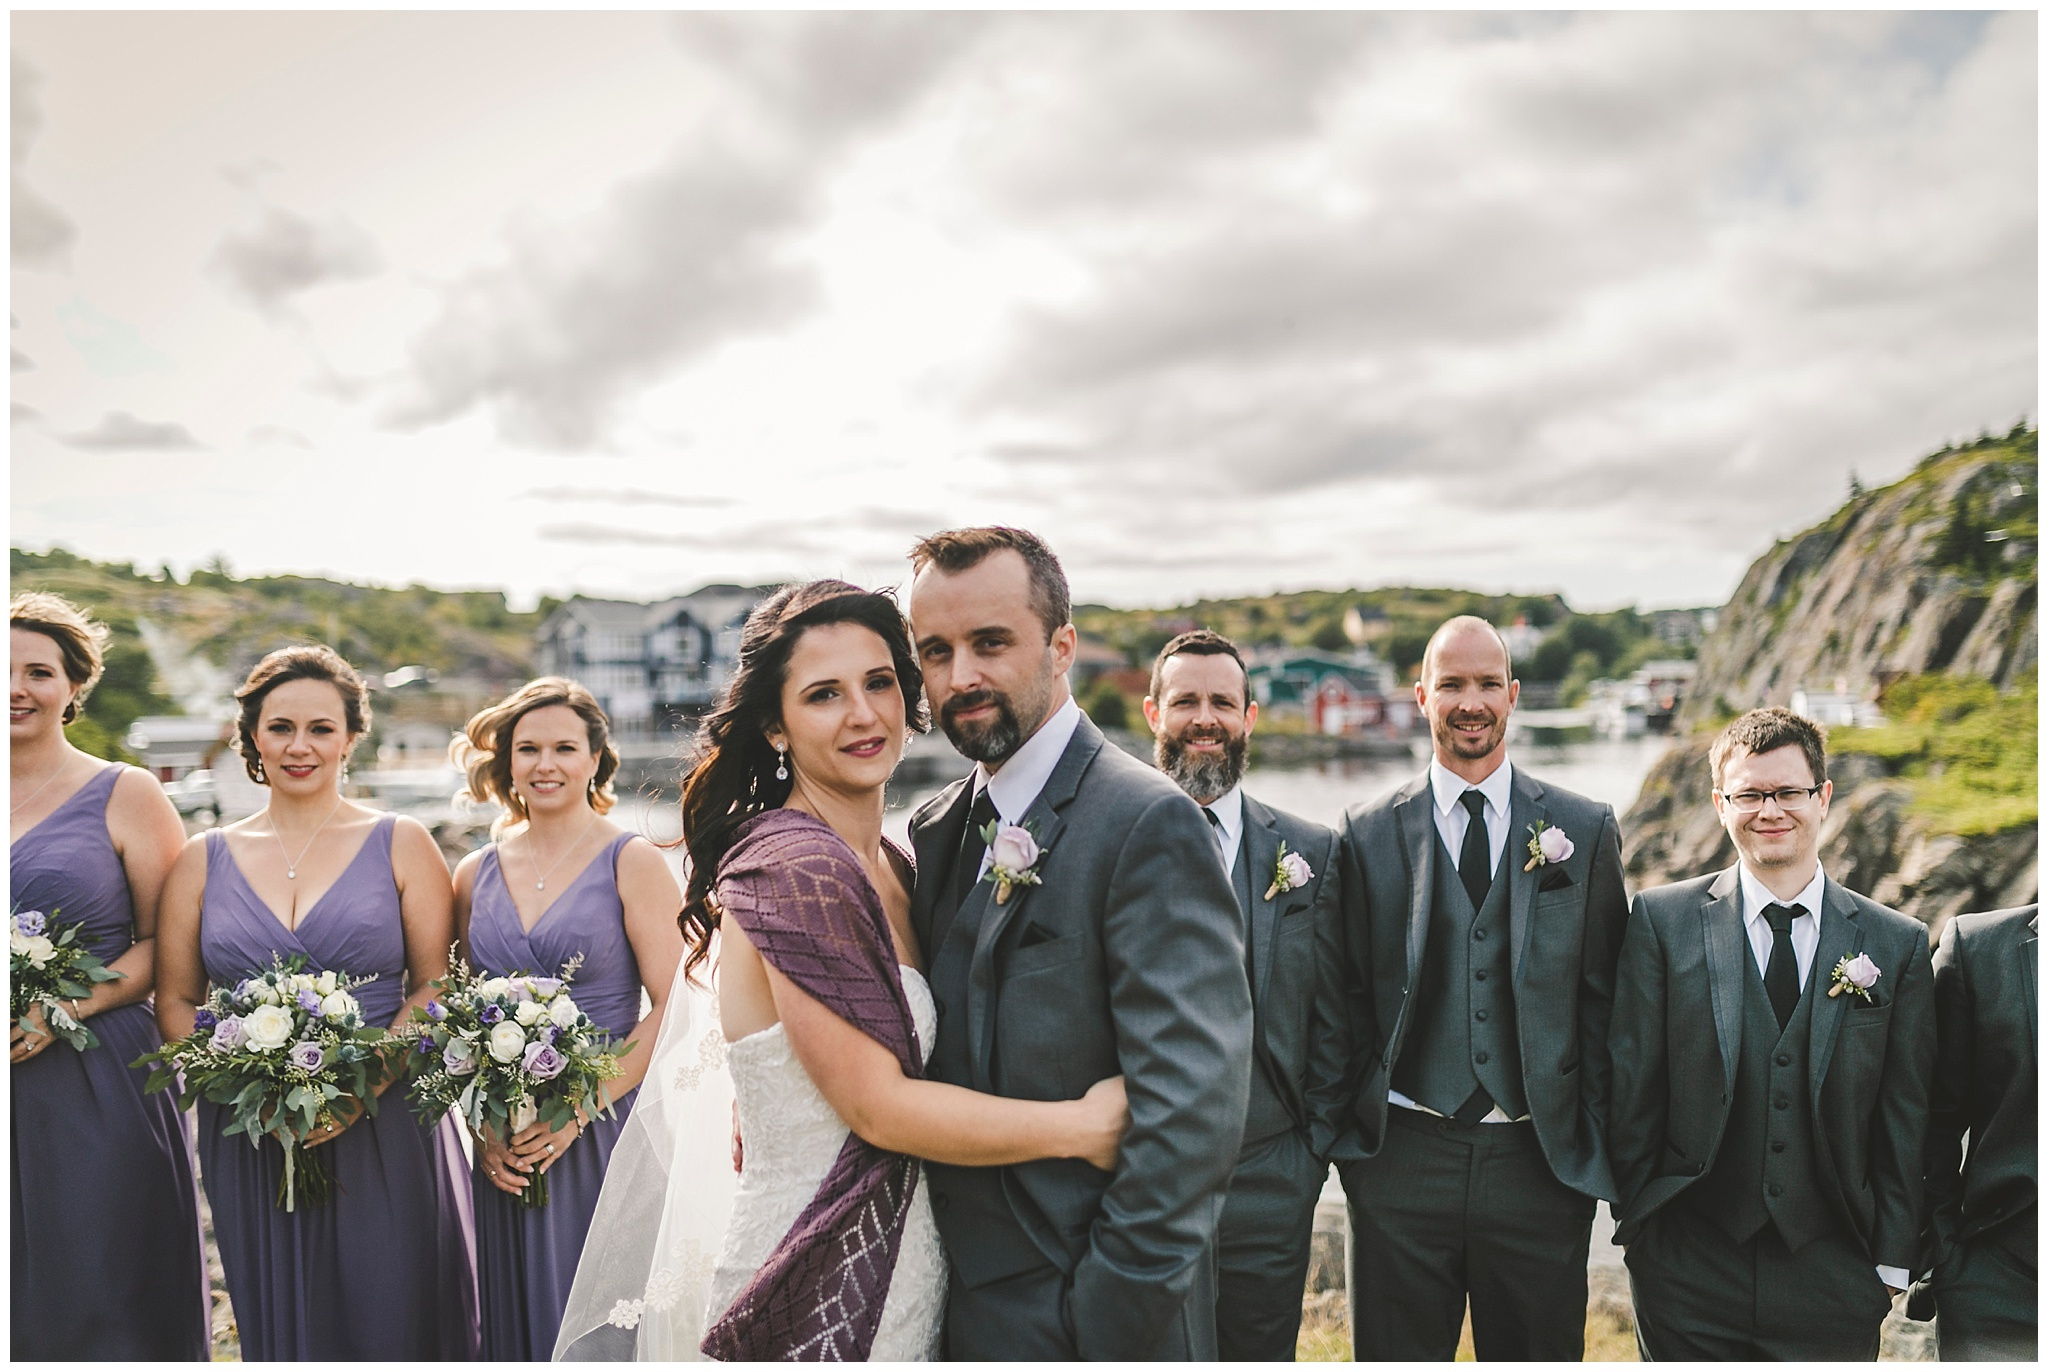 Wedding Party in Quidi Vidi during a cool late summer wedding